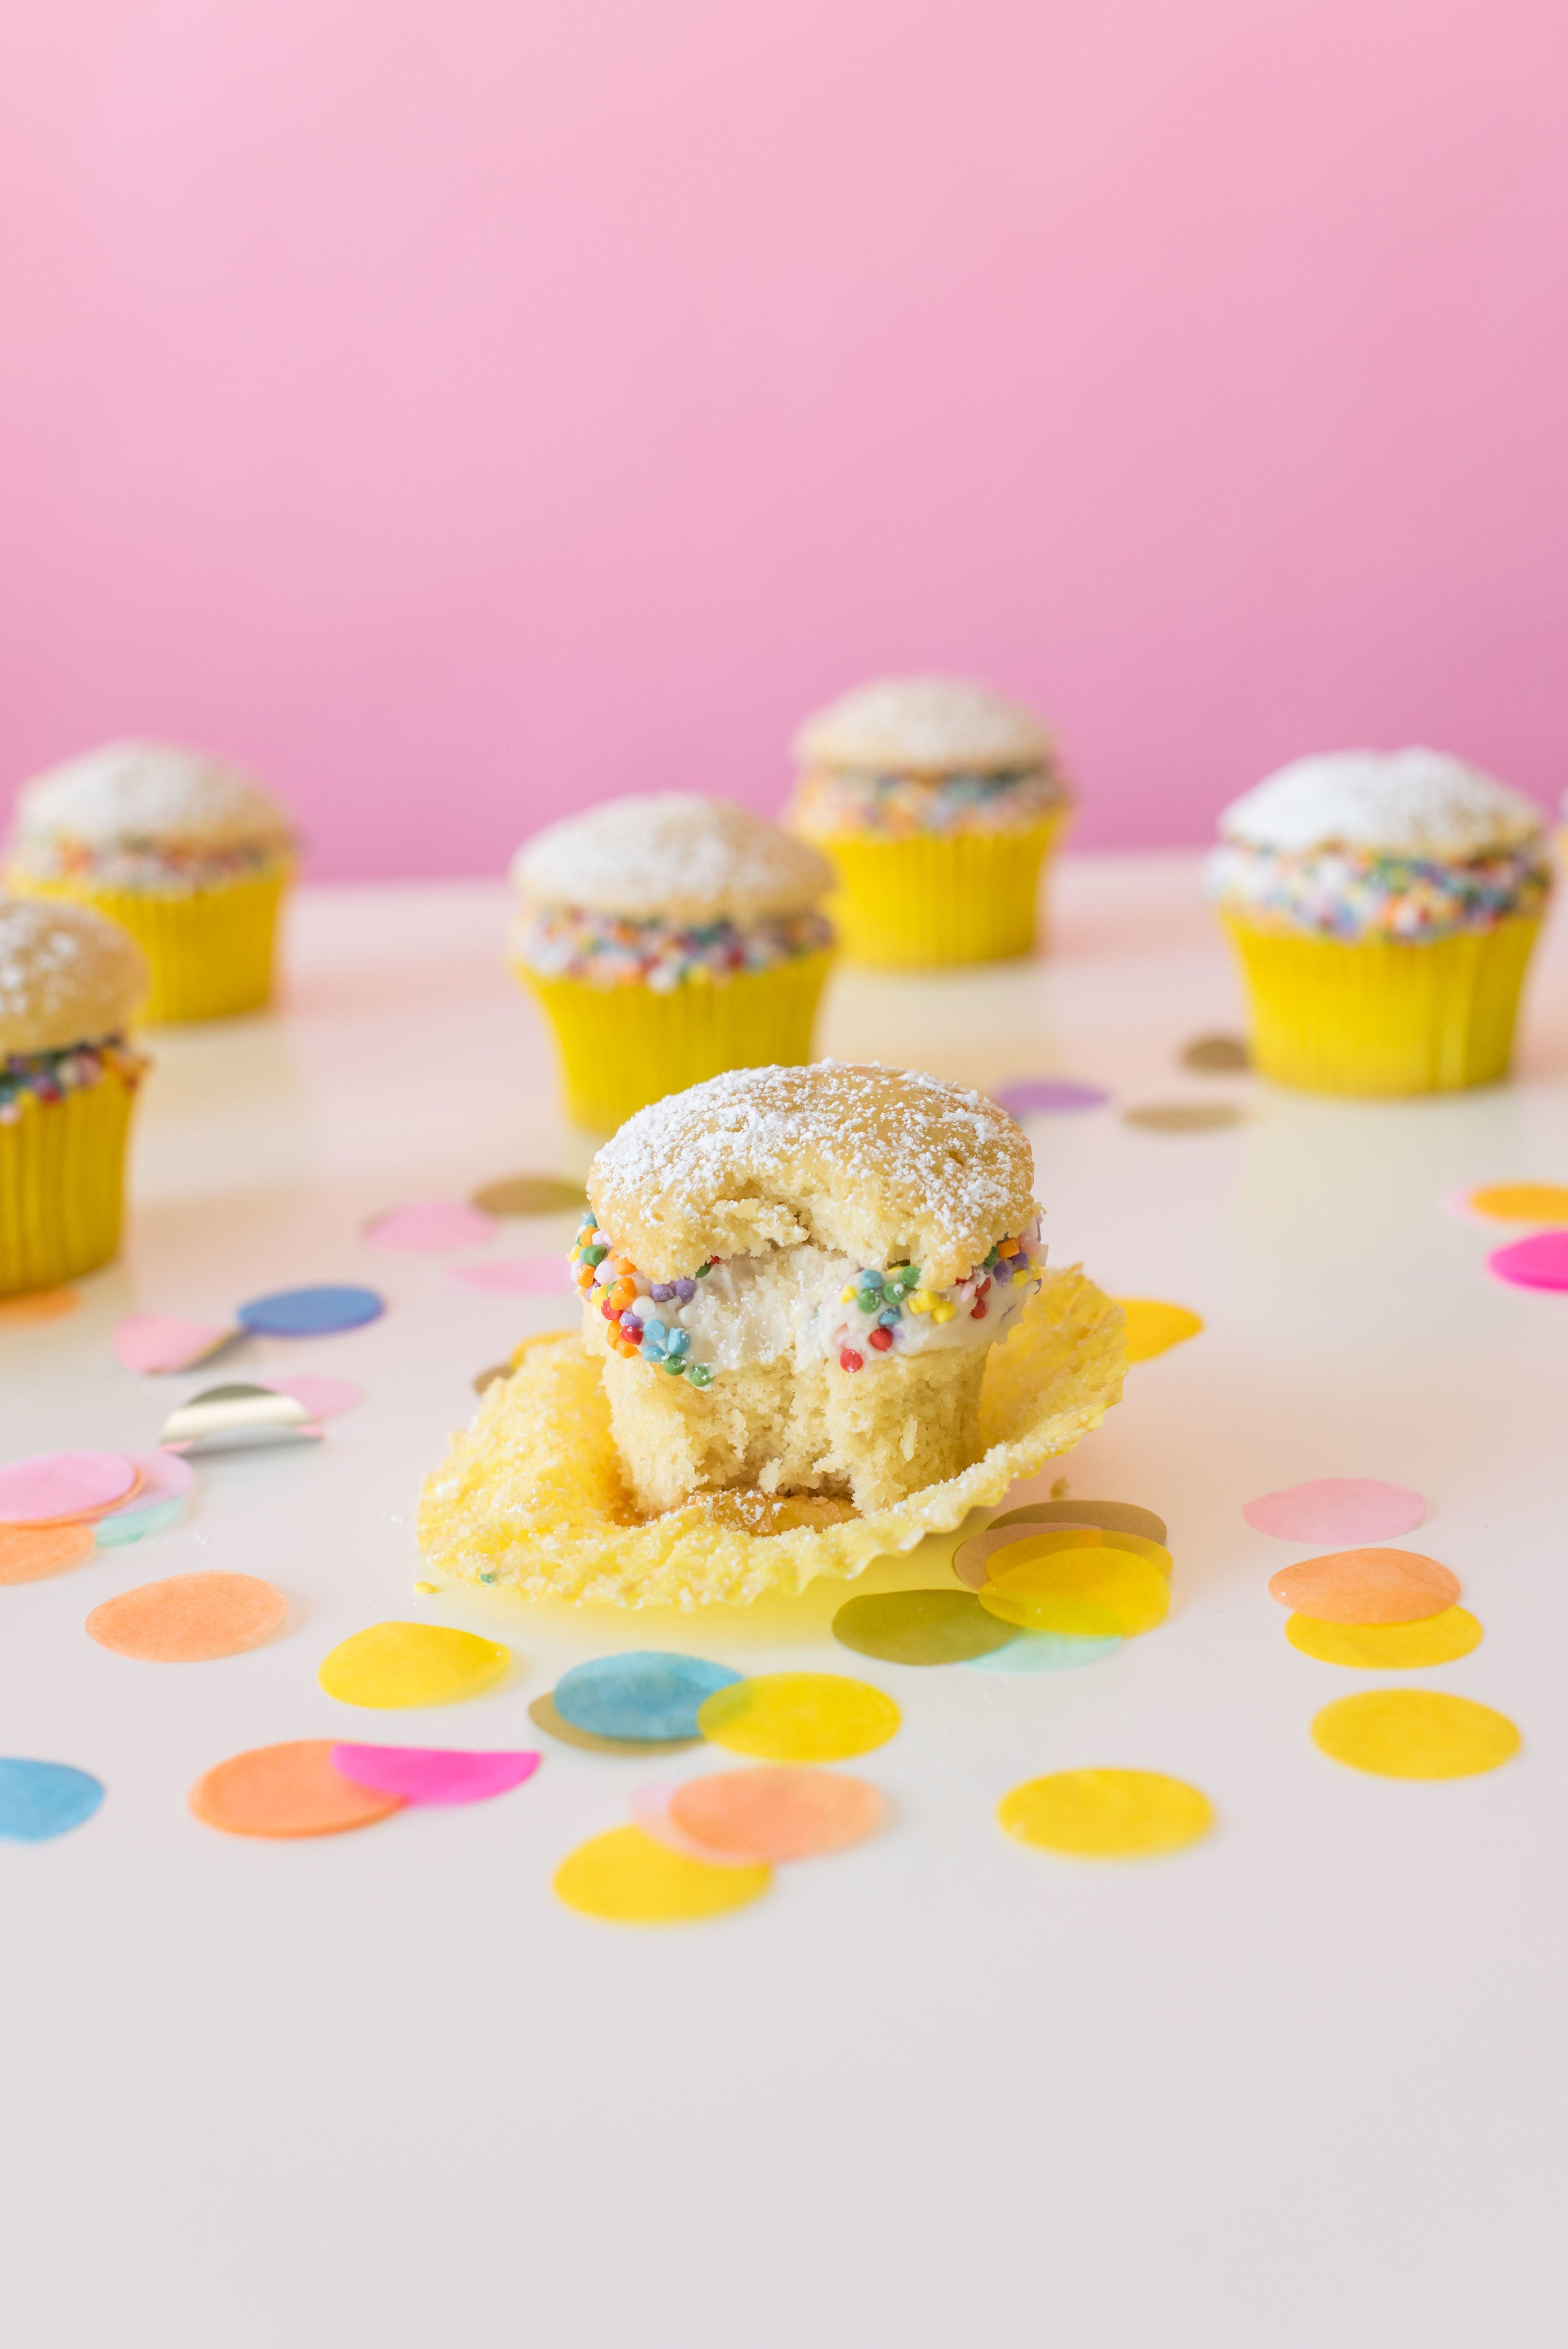 Image of side of six Miss Jones Baking Co Confetti Pop Cream Puff Cupcakes with a bite taken out of middle cupcake